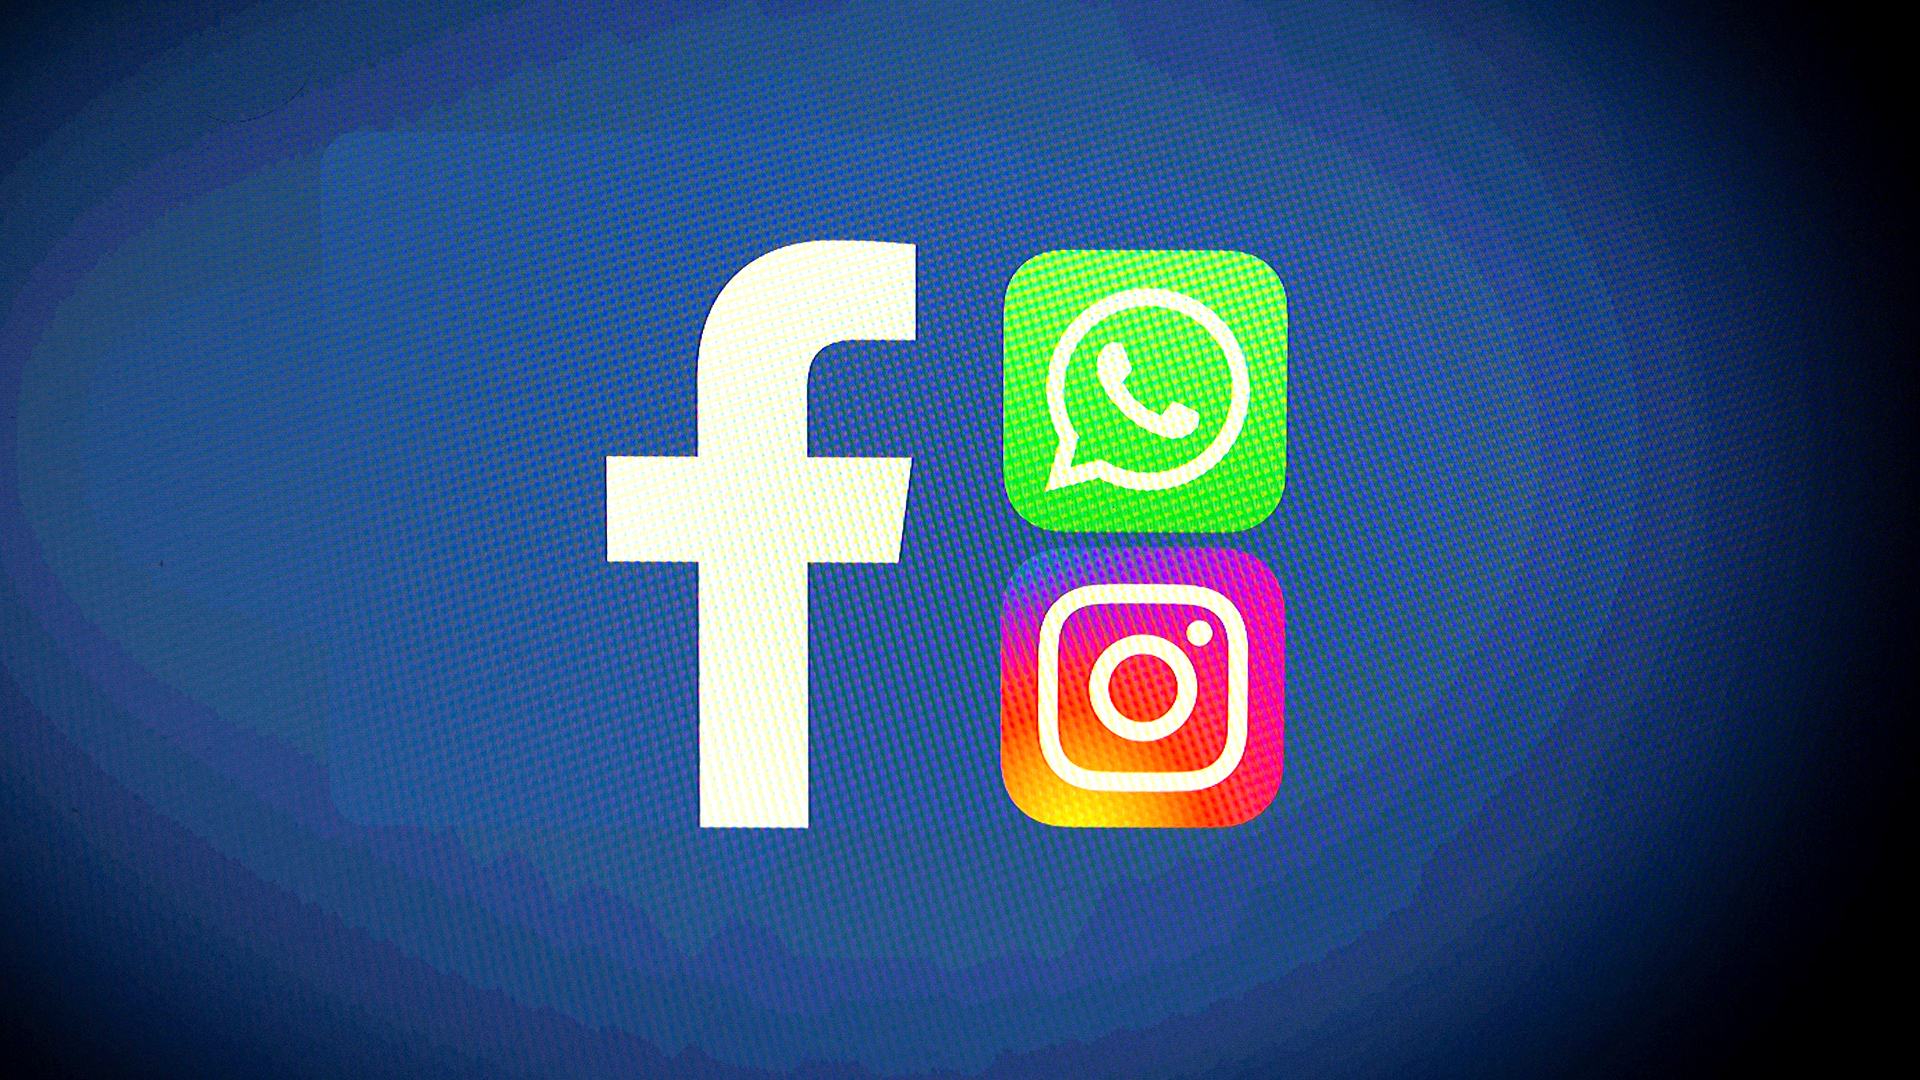 Facebook's apps back online after outage affecting billions worldwide